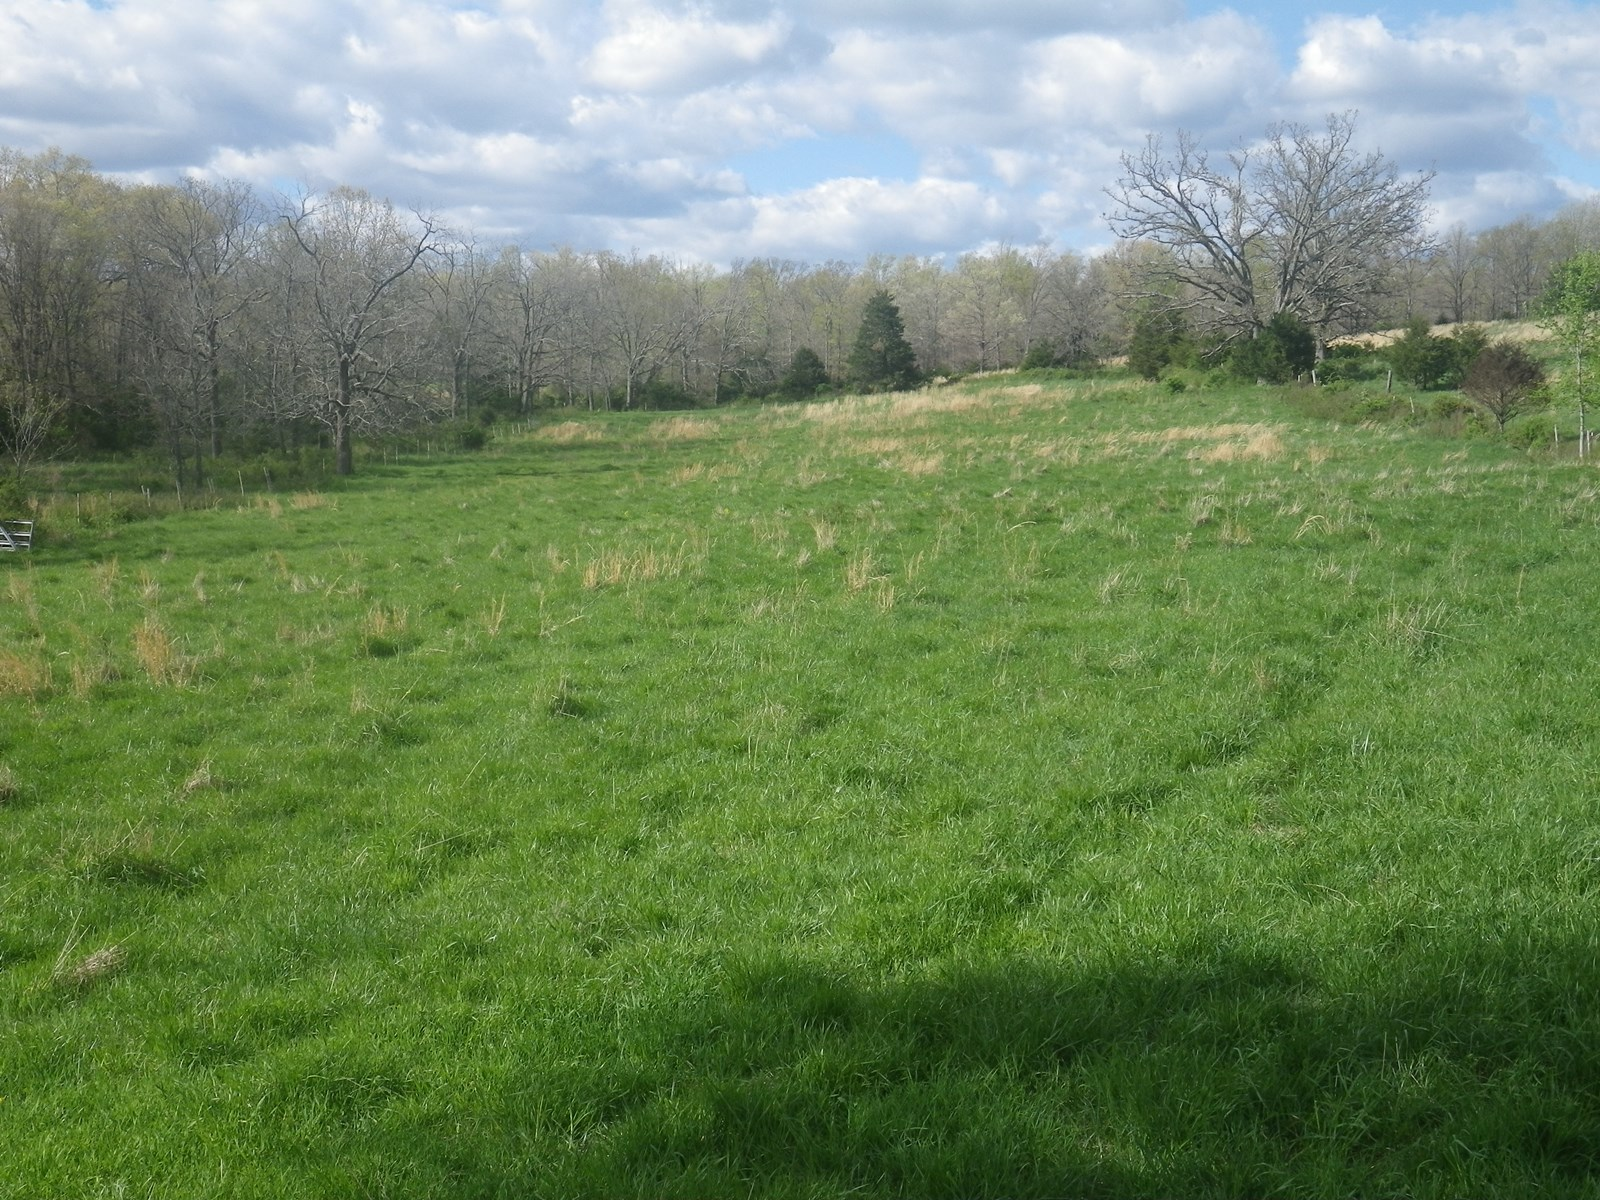 Land for Sale - Pasture - 2 Ponds - South Central Missouri